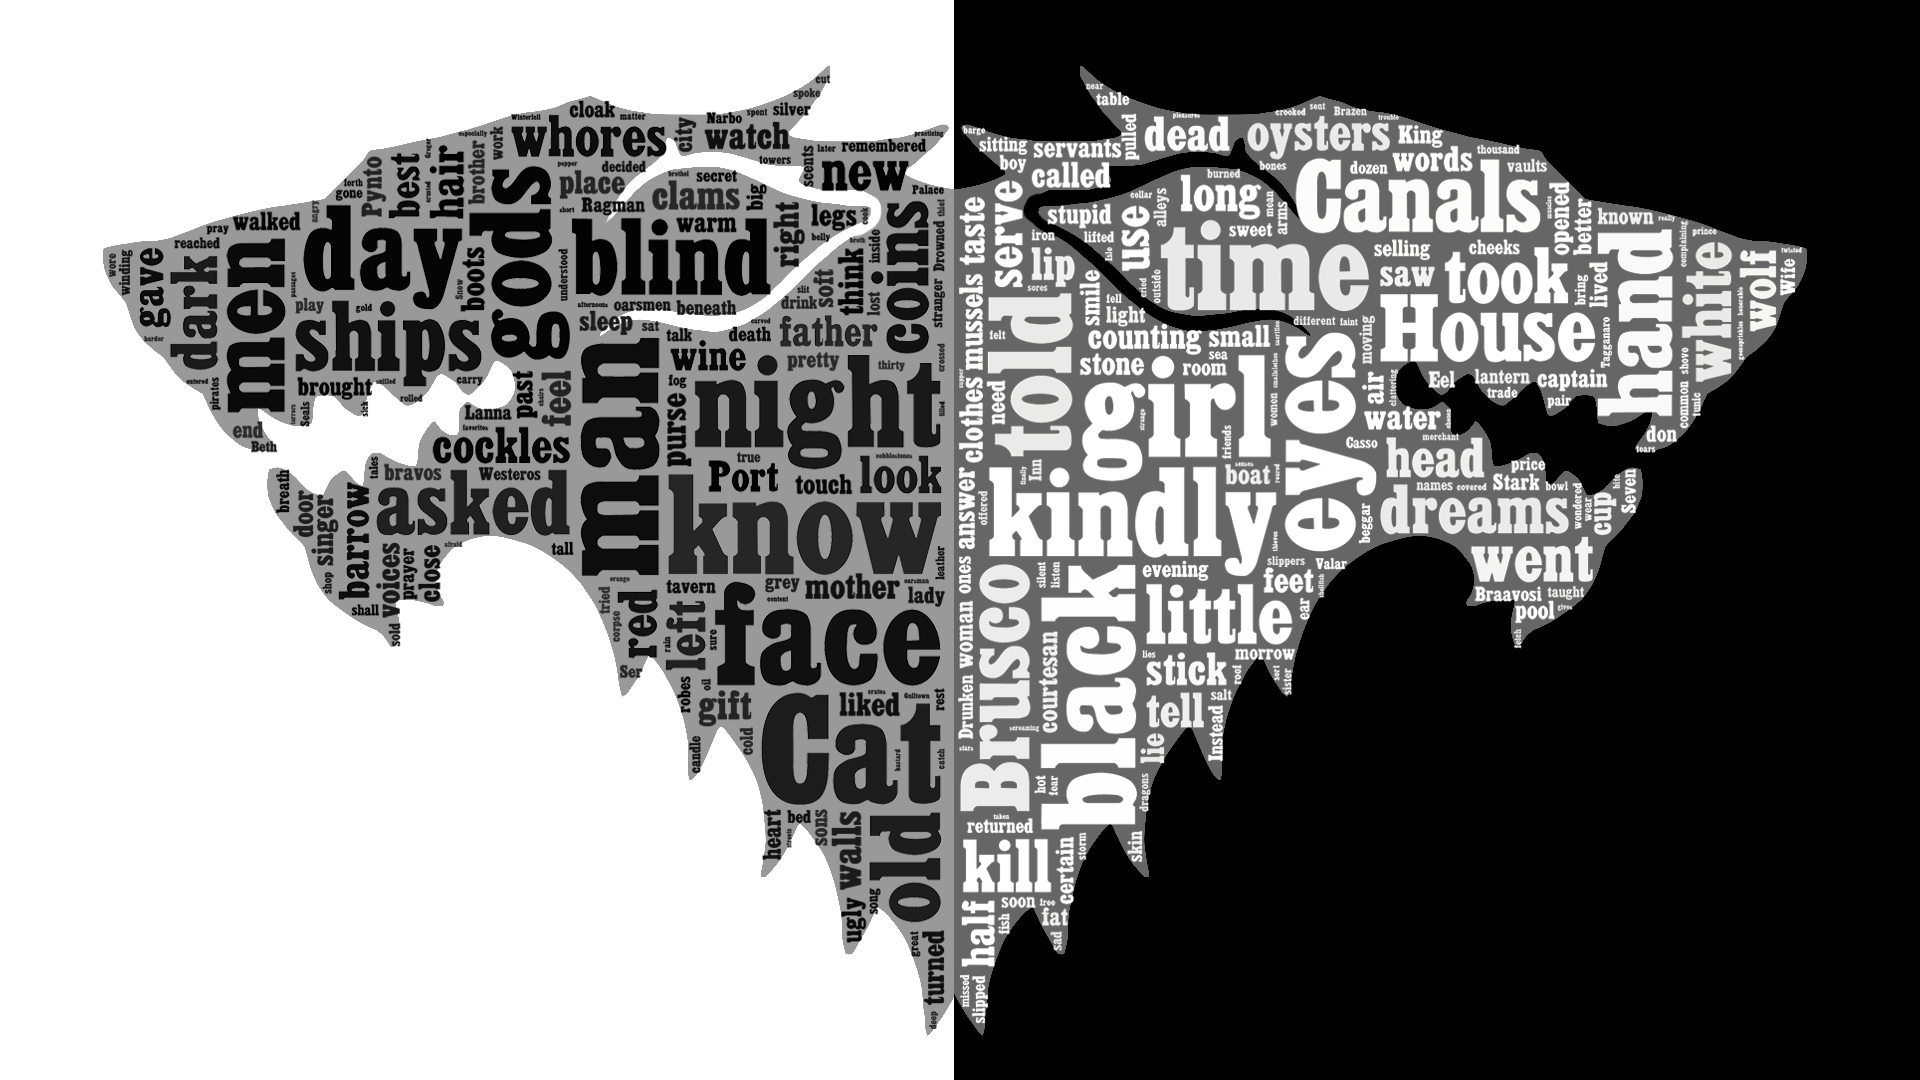 ASOIAF Word Cloud - Arya Stark